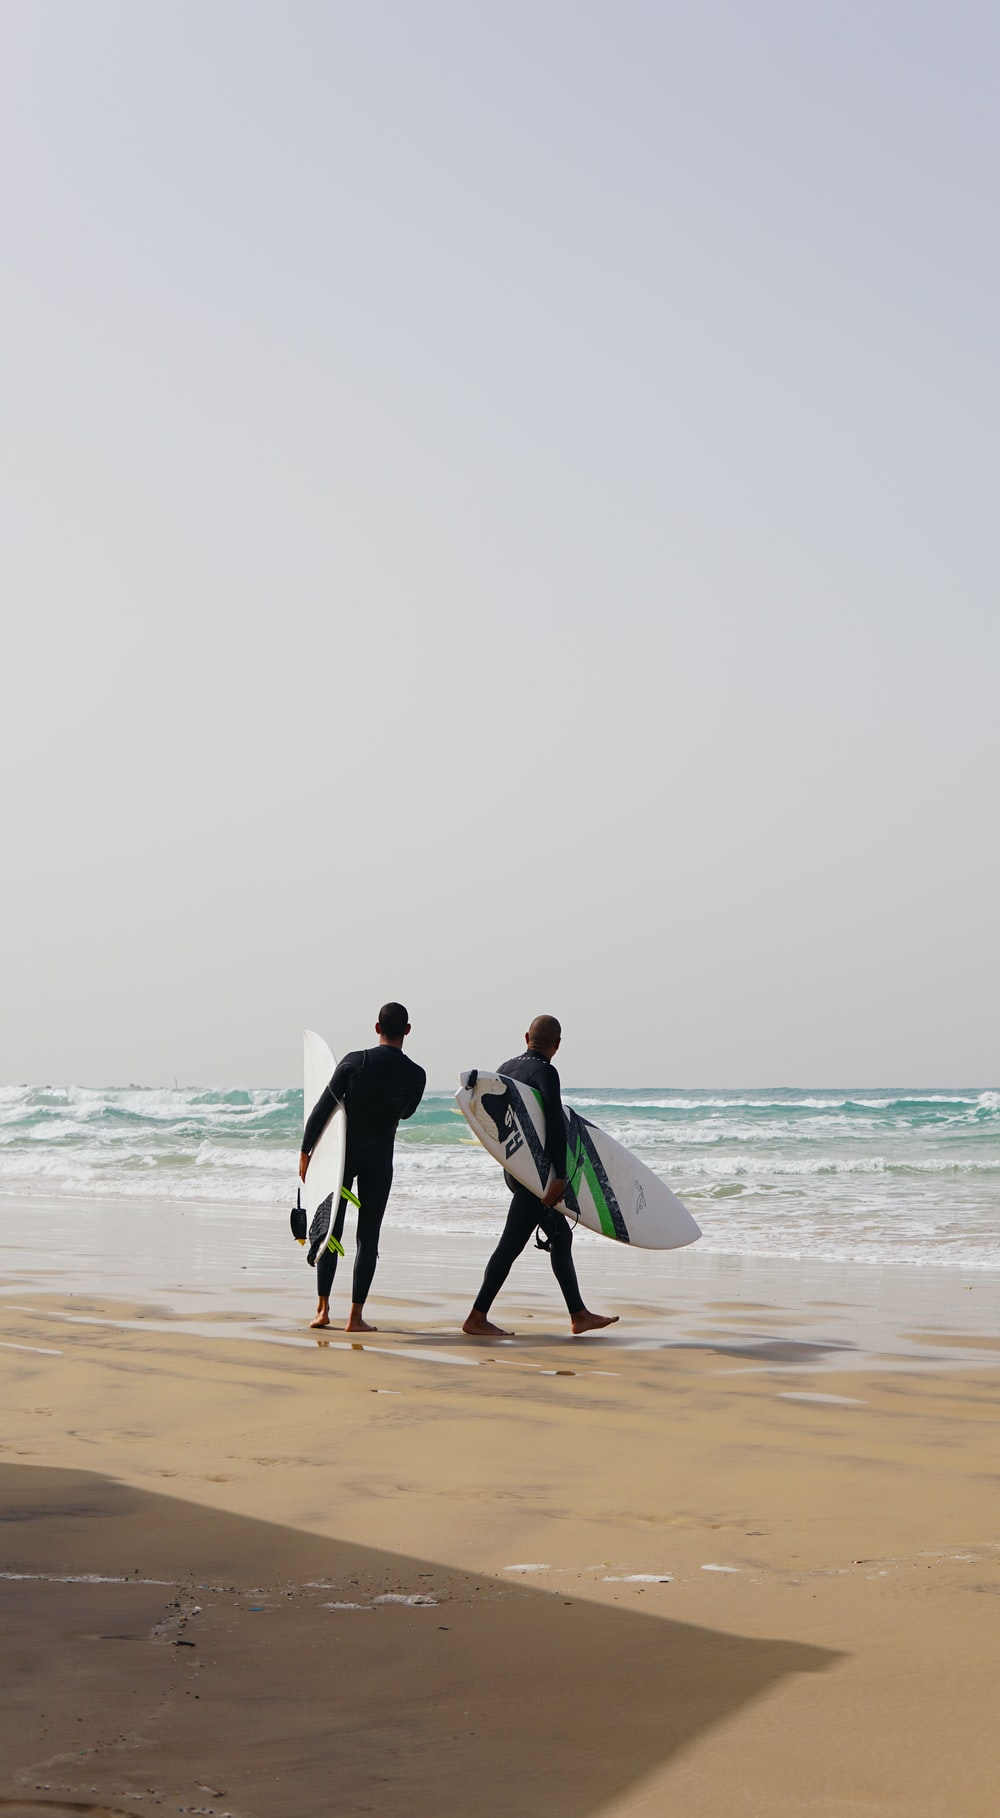 two men in wetsuit holding surfboards